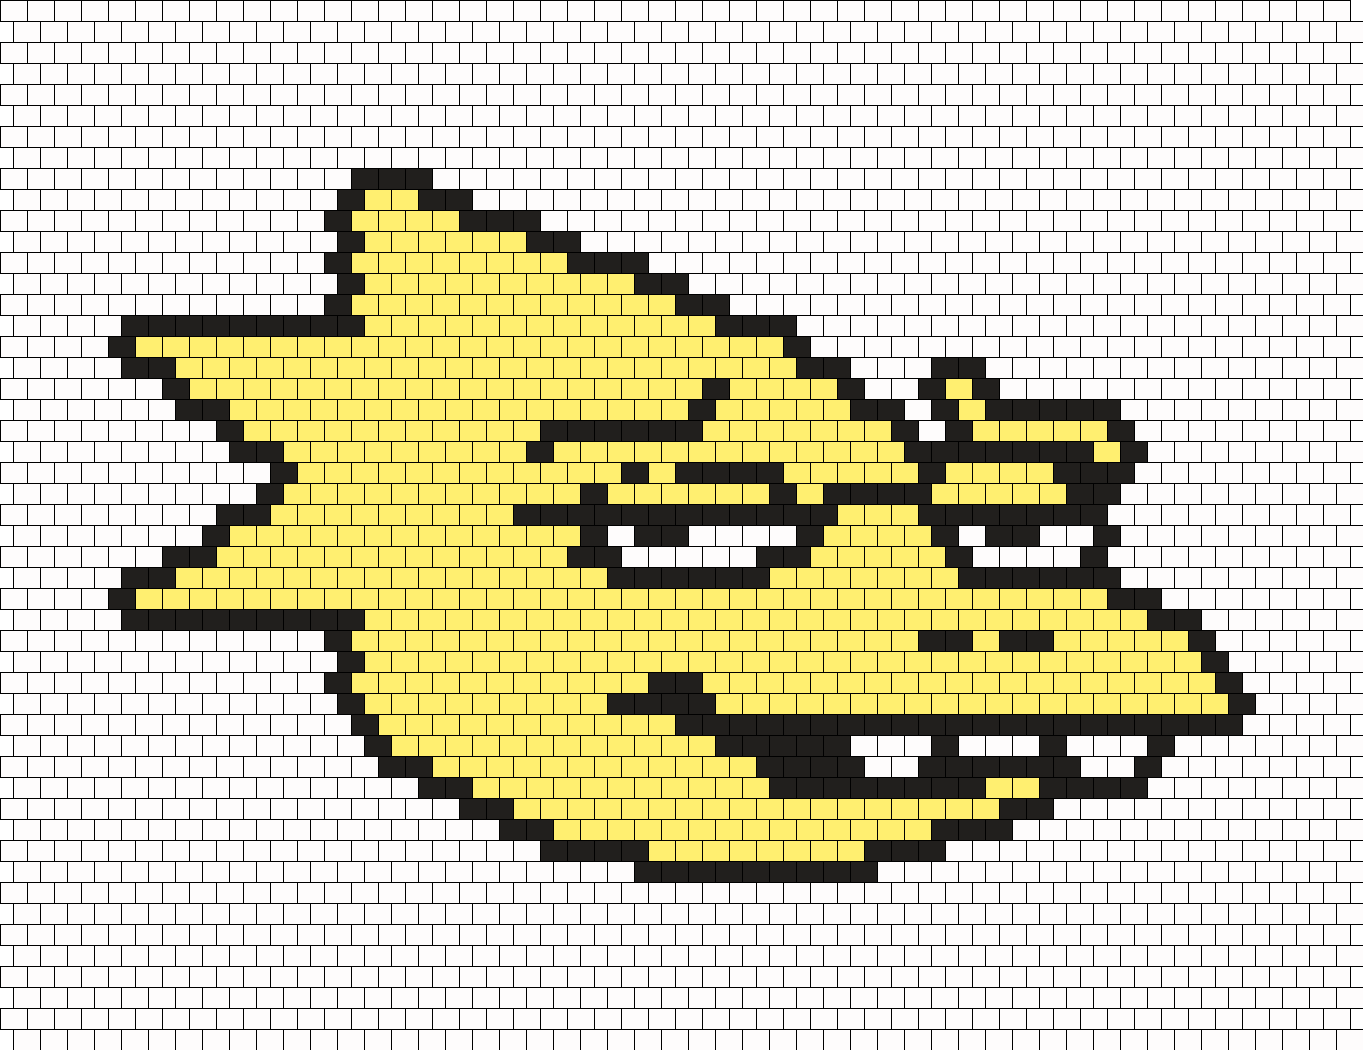 Alternate Color Alphys Face Sprite